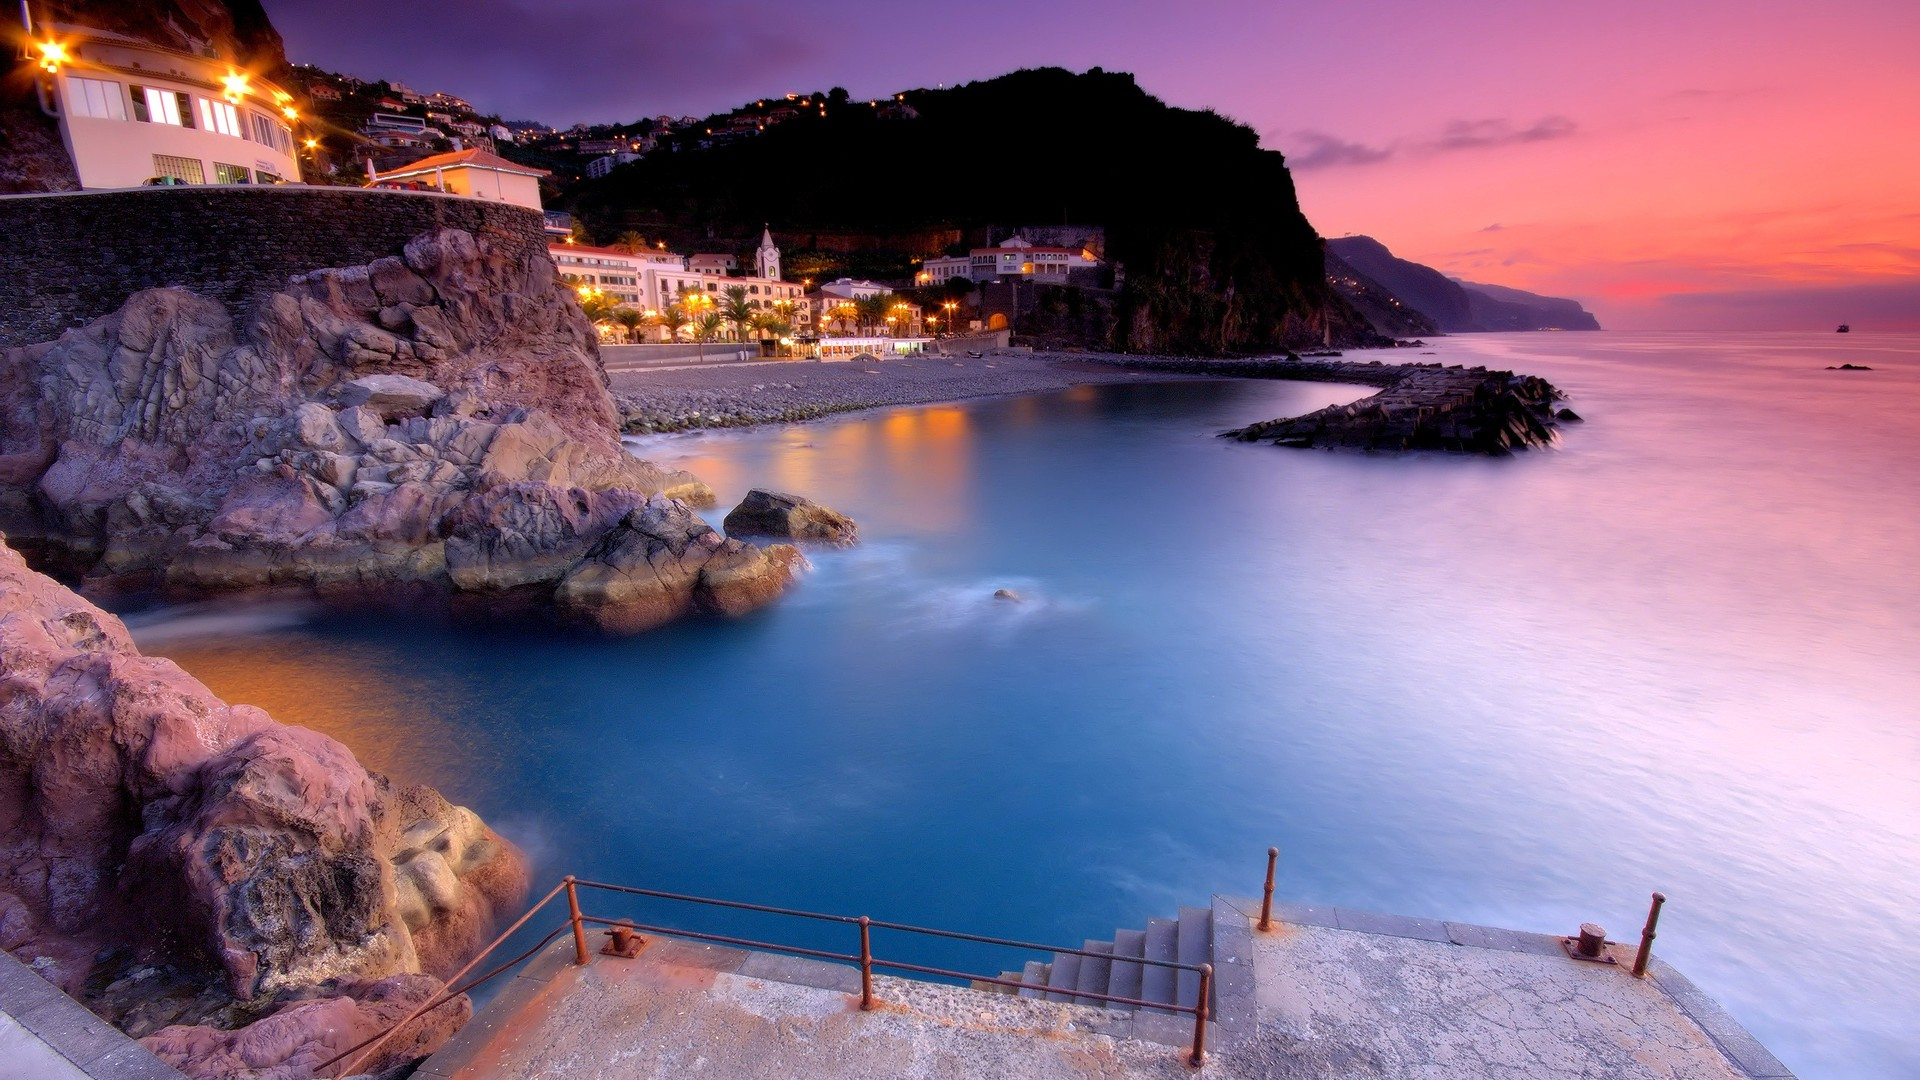 Madeira, provides an overnight port of call experience for passengers aboard P&O's Aurora.